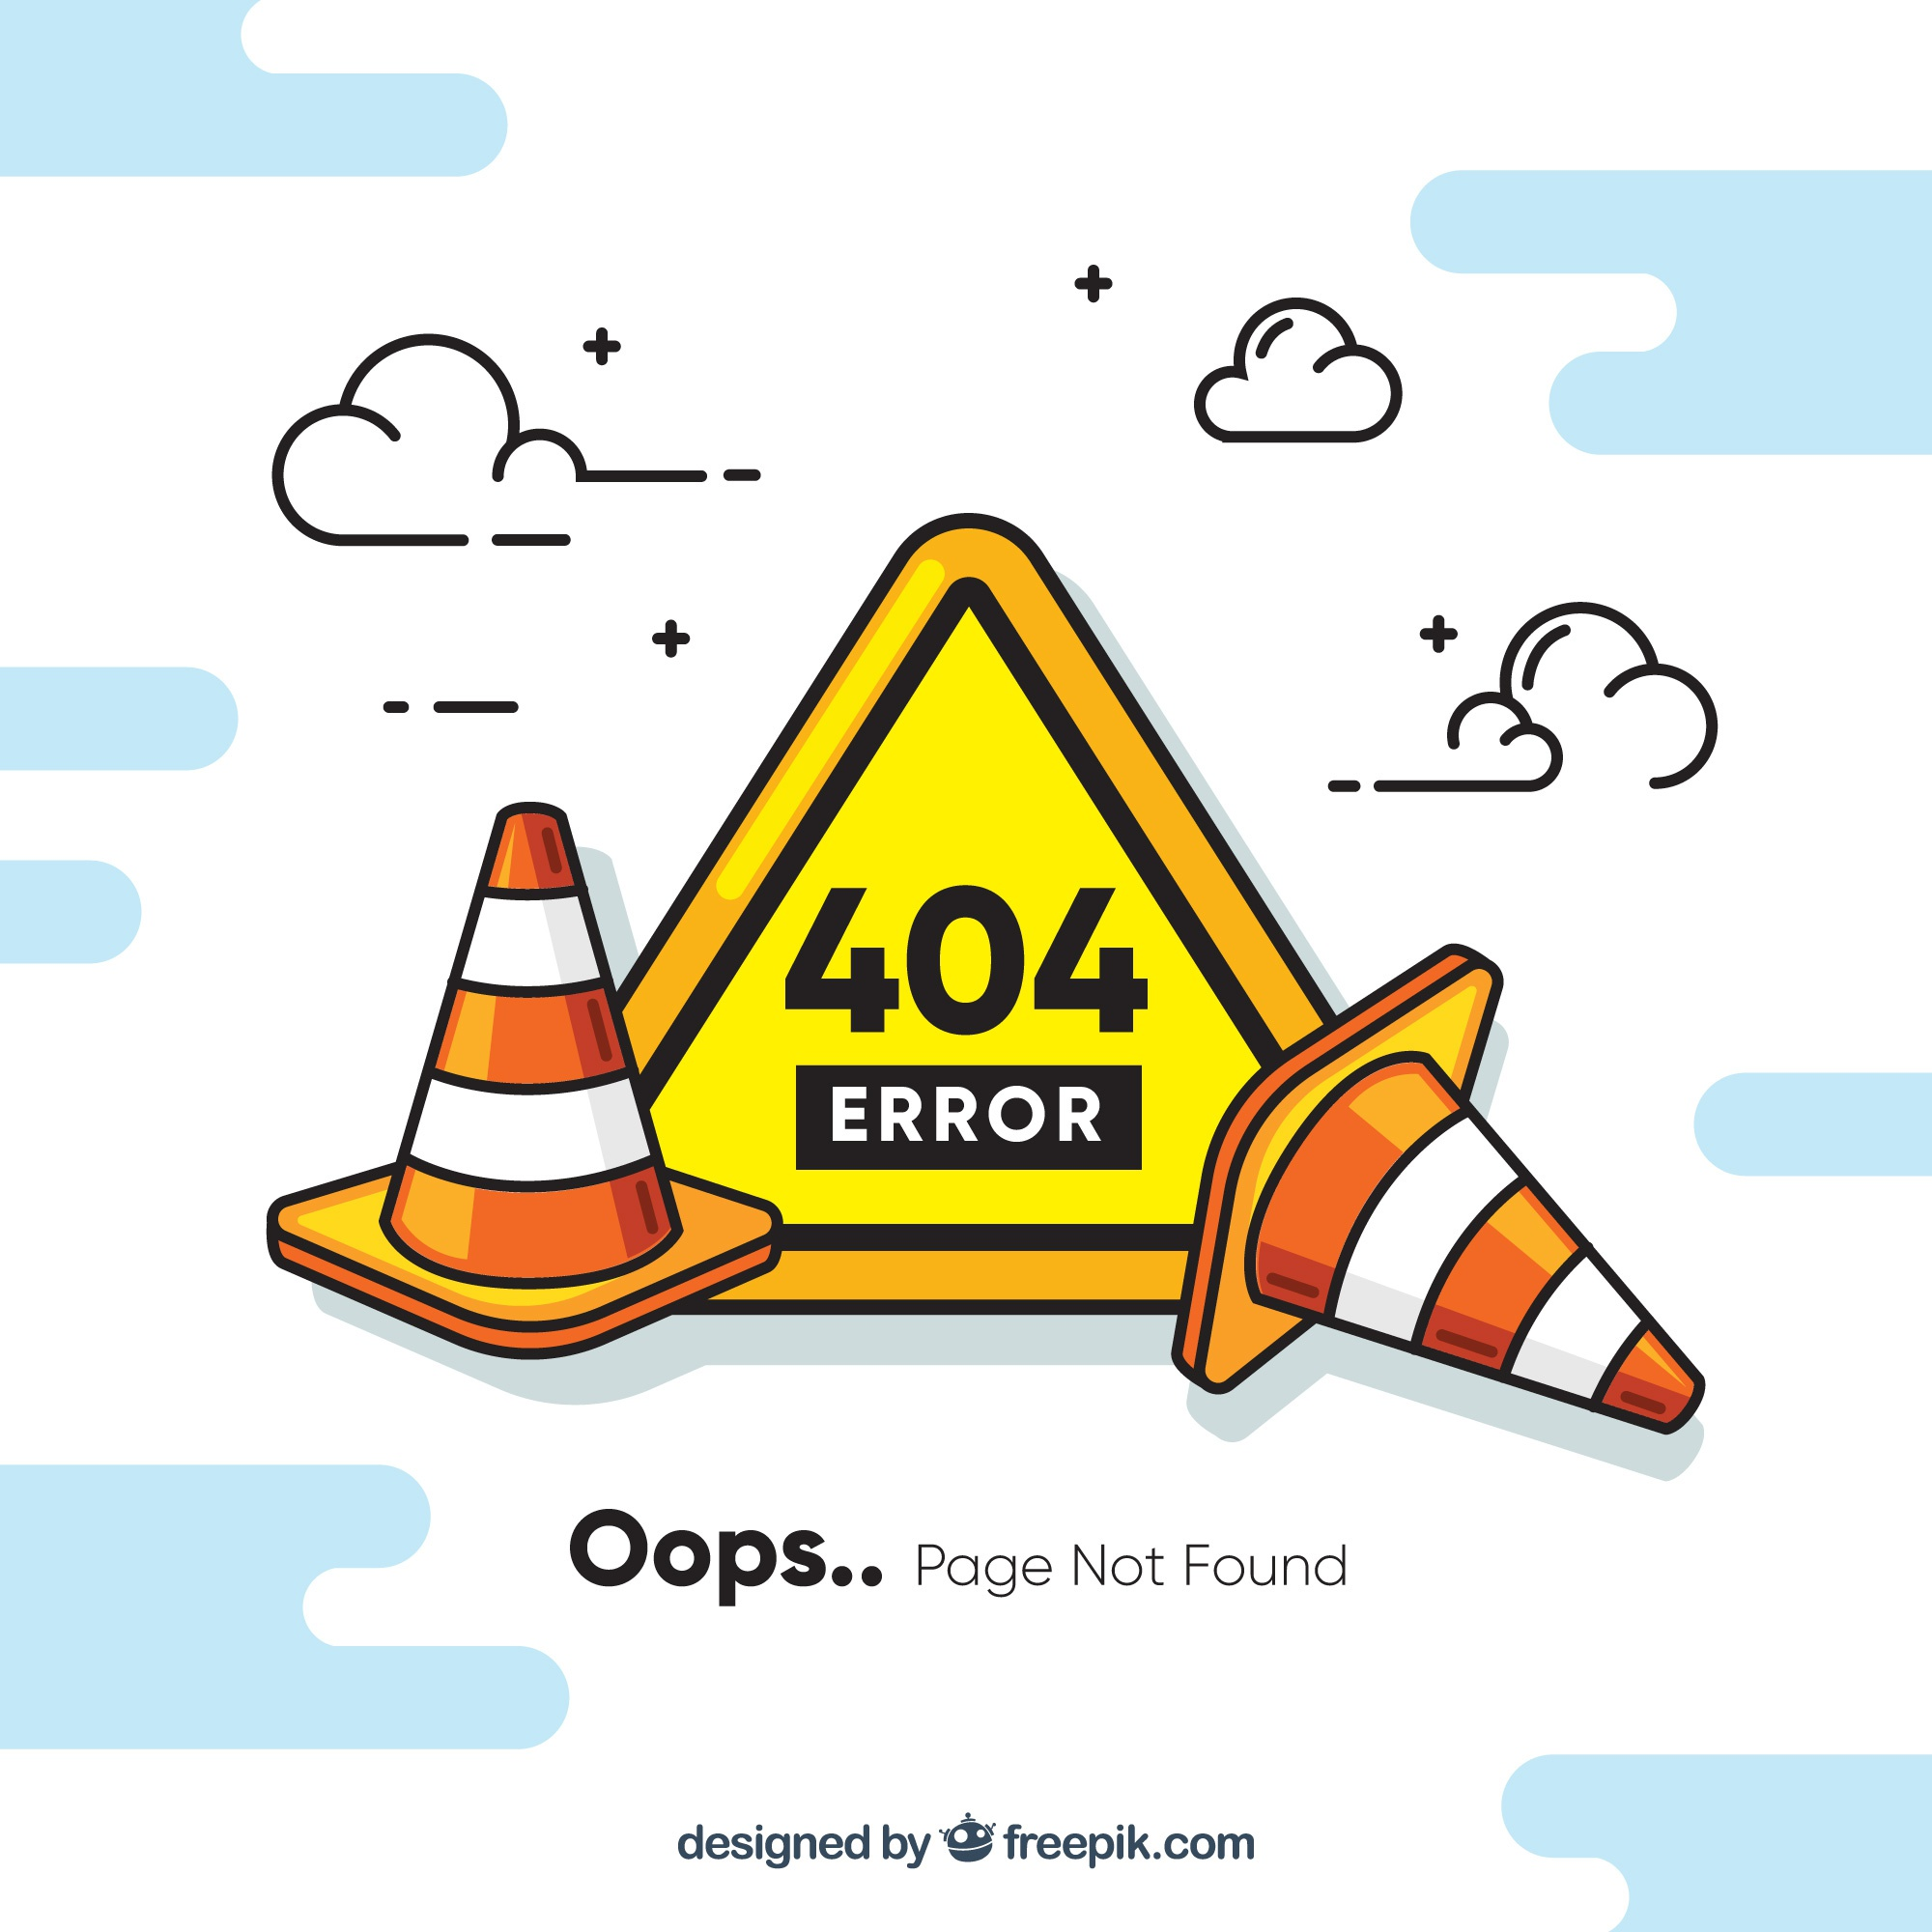 404 error concept with roadworks